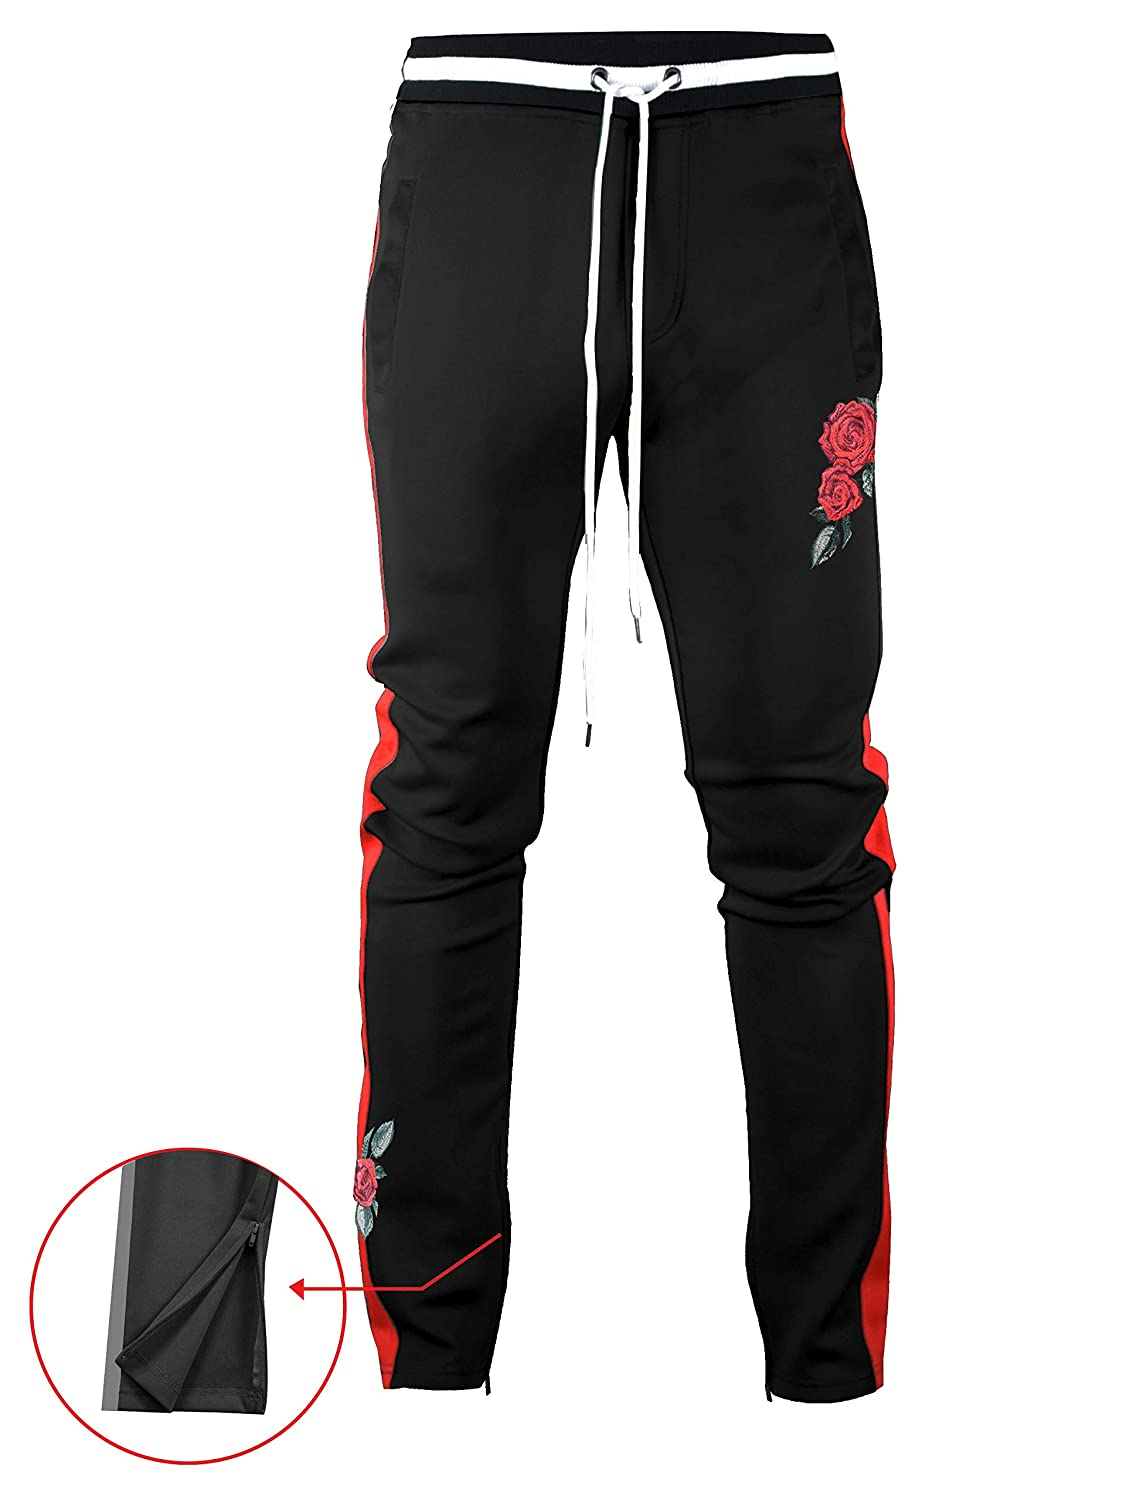 3f2cee14fa6e Amazon.com  Screenshotbrand Mens Hip Hop Premium Slim Fit Track Pants -  Athletic Jogger Bottom with Side Taping  Clothing